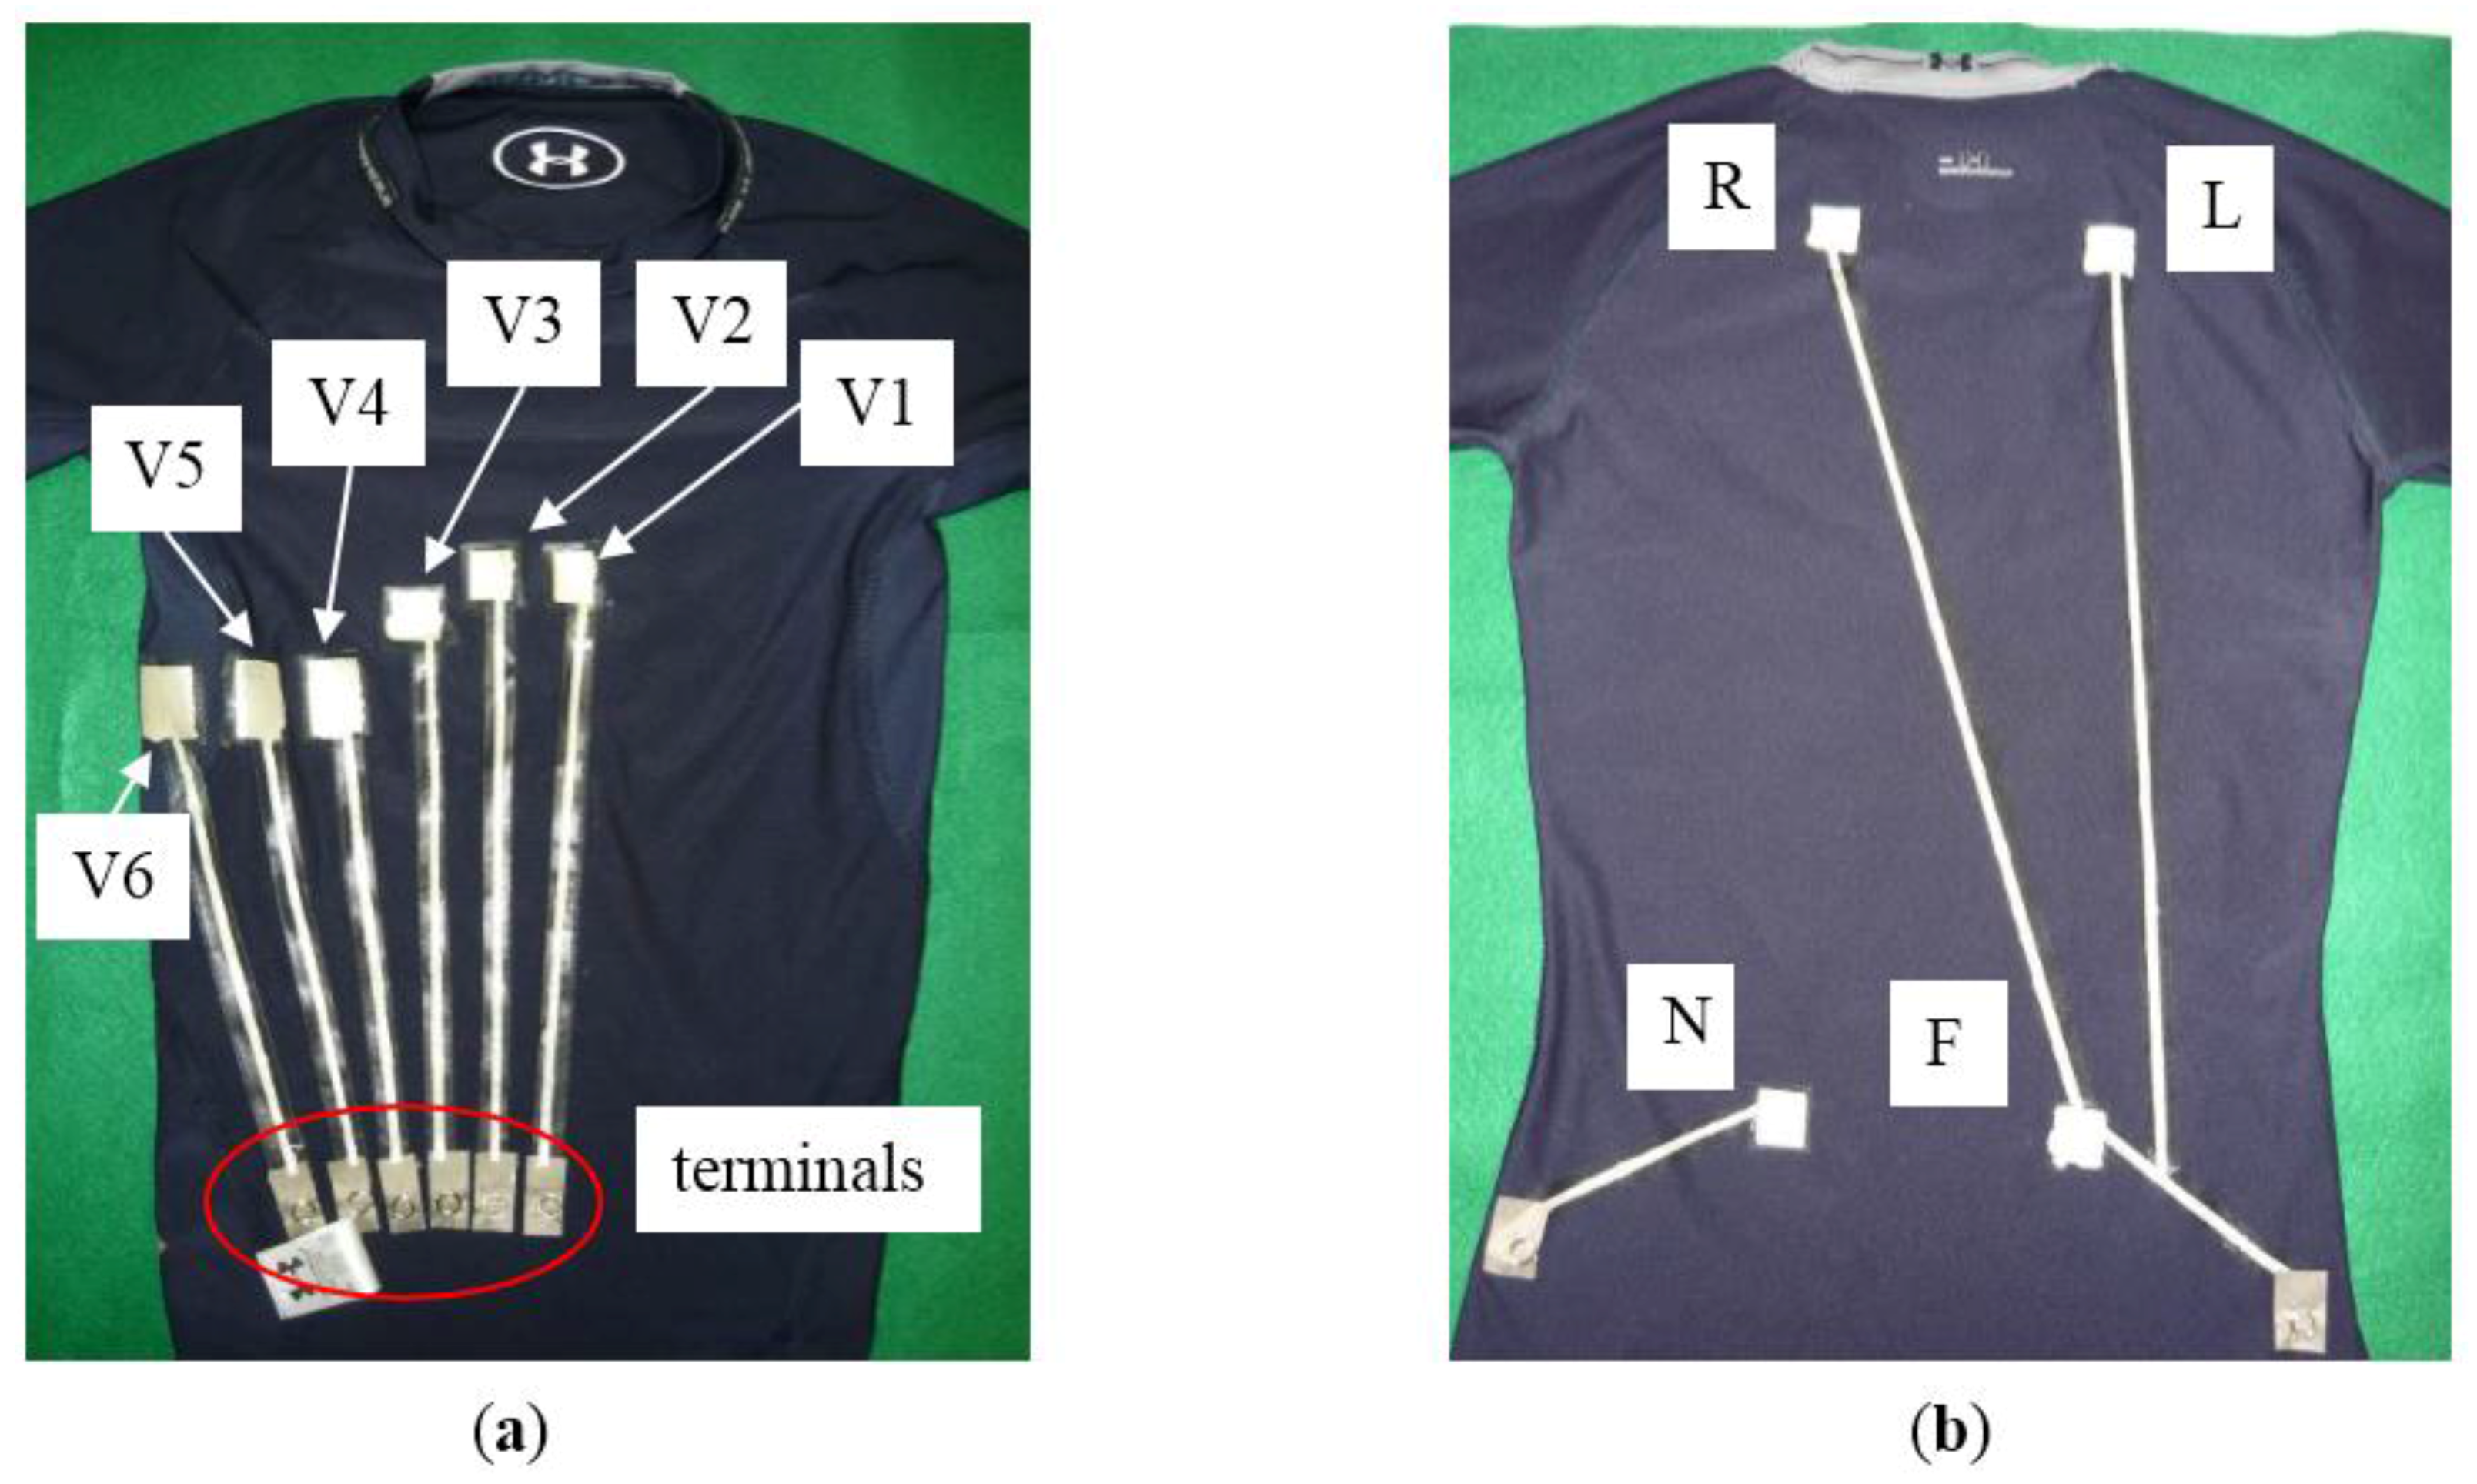 837427fdb9 Fibers | Free Full-Text | A Smart Shirt Made with Conductive Ink and ...